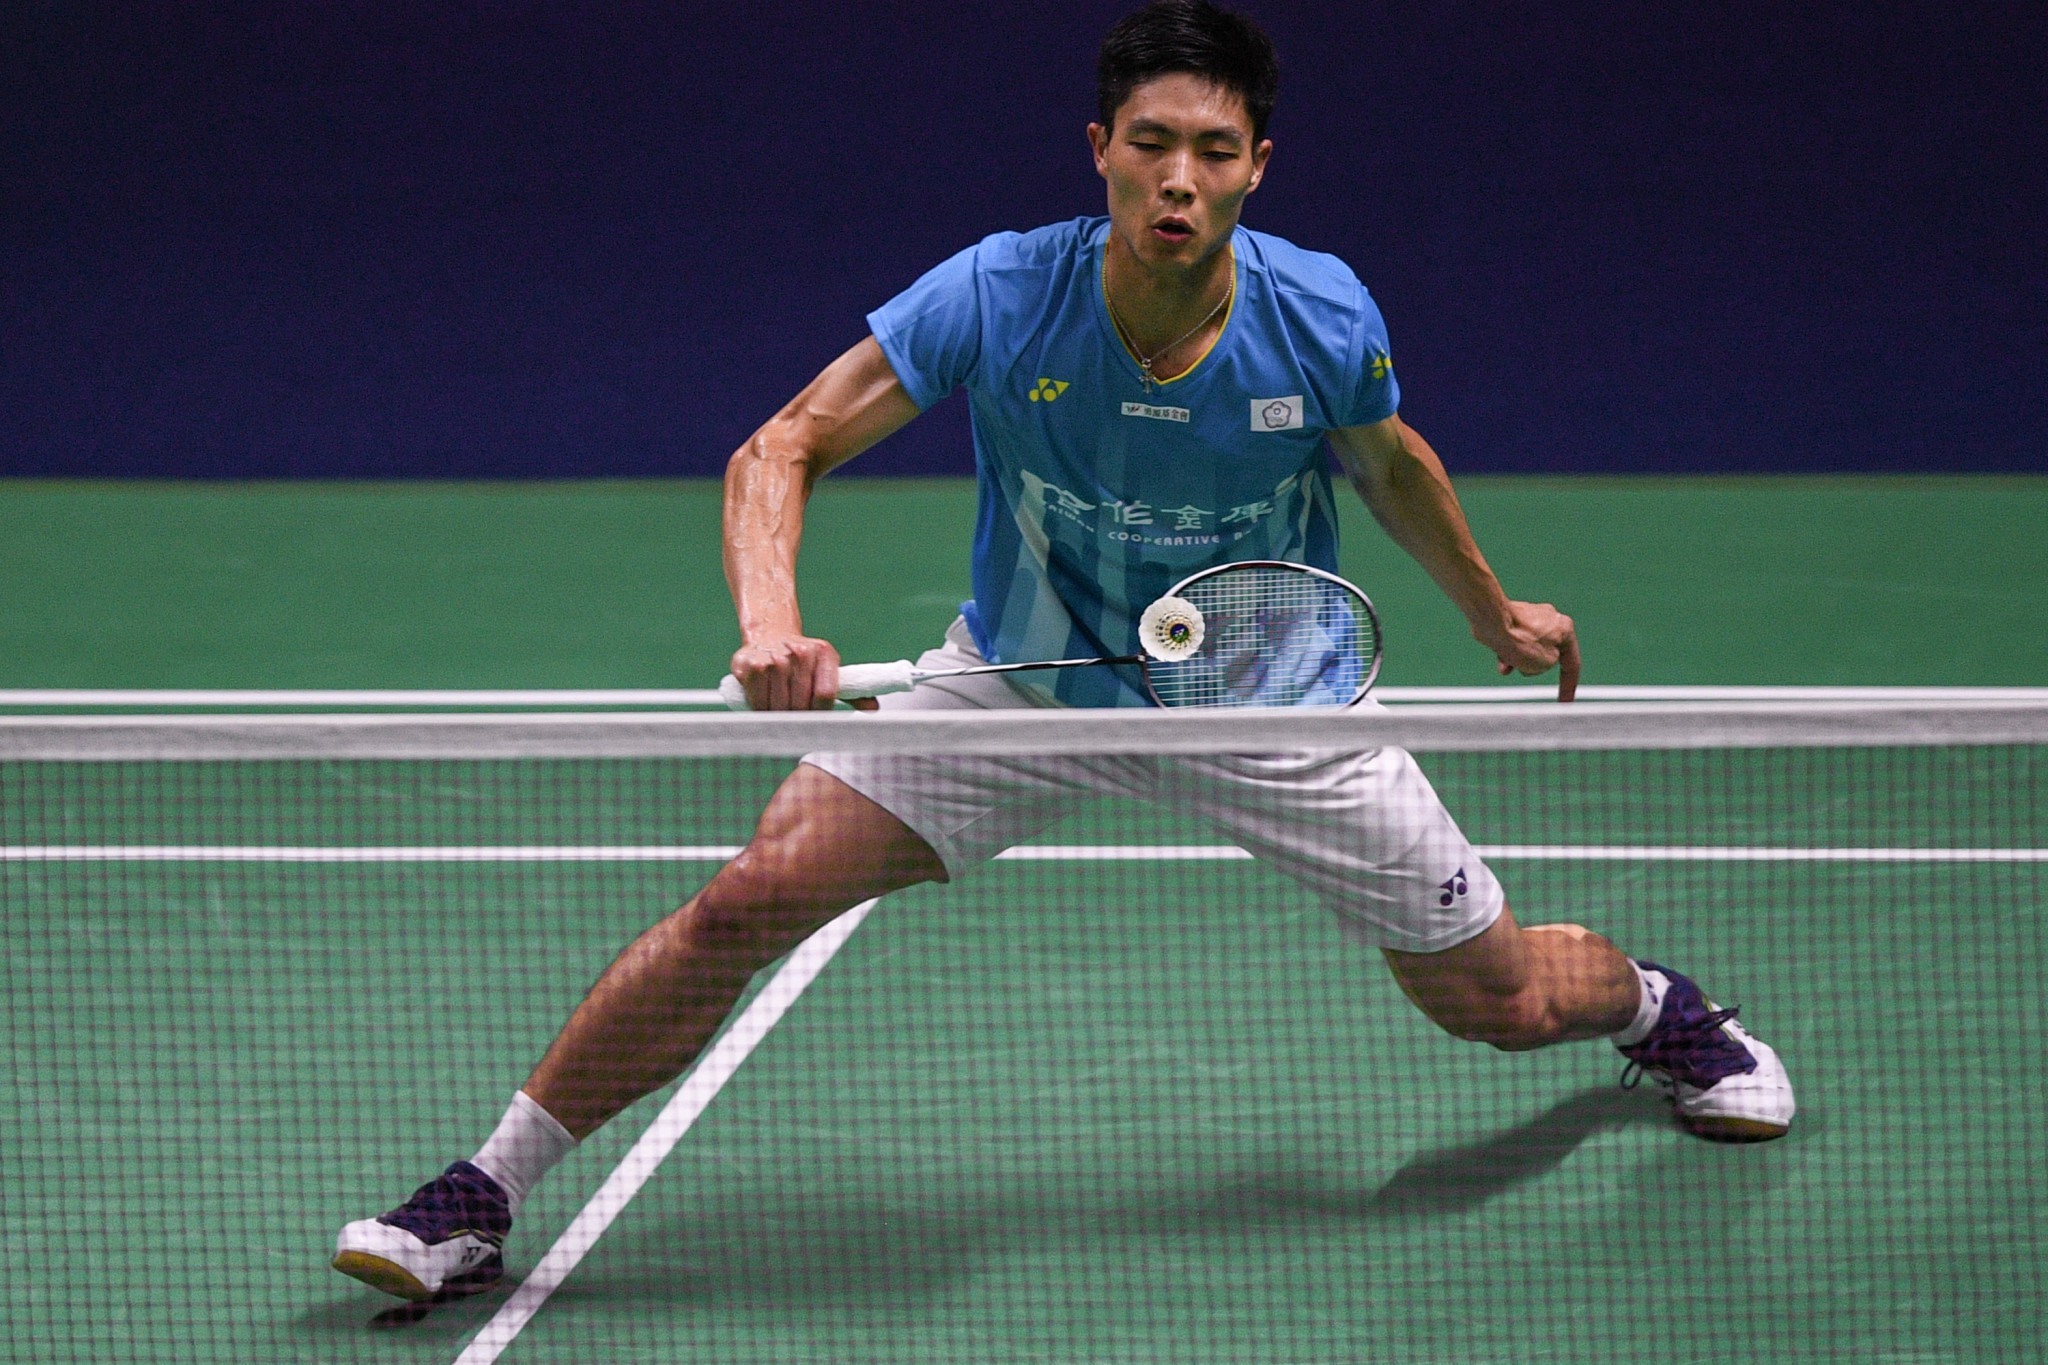 Second seed Chou Tien-chen was given a tough workout by Denmark's Hans-Kristian Vittinghus ©Getty Images